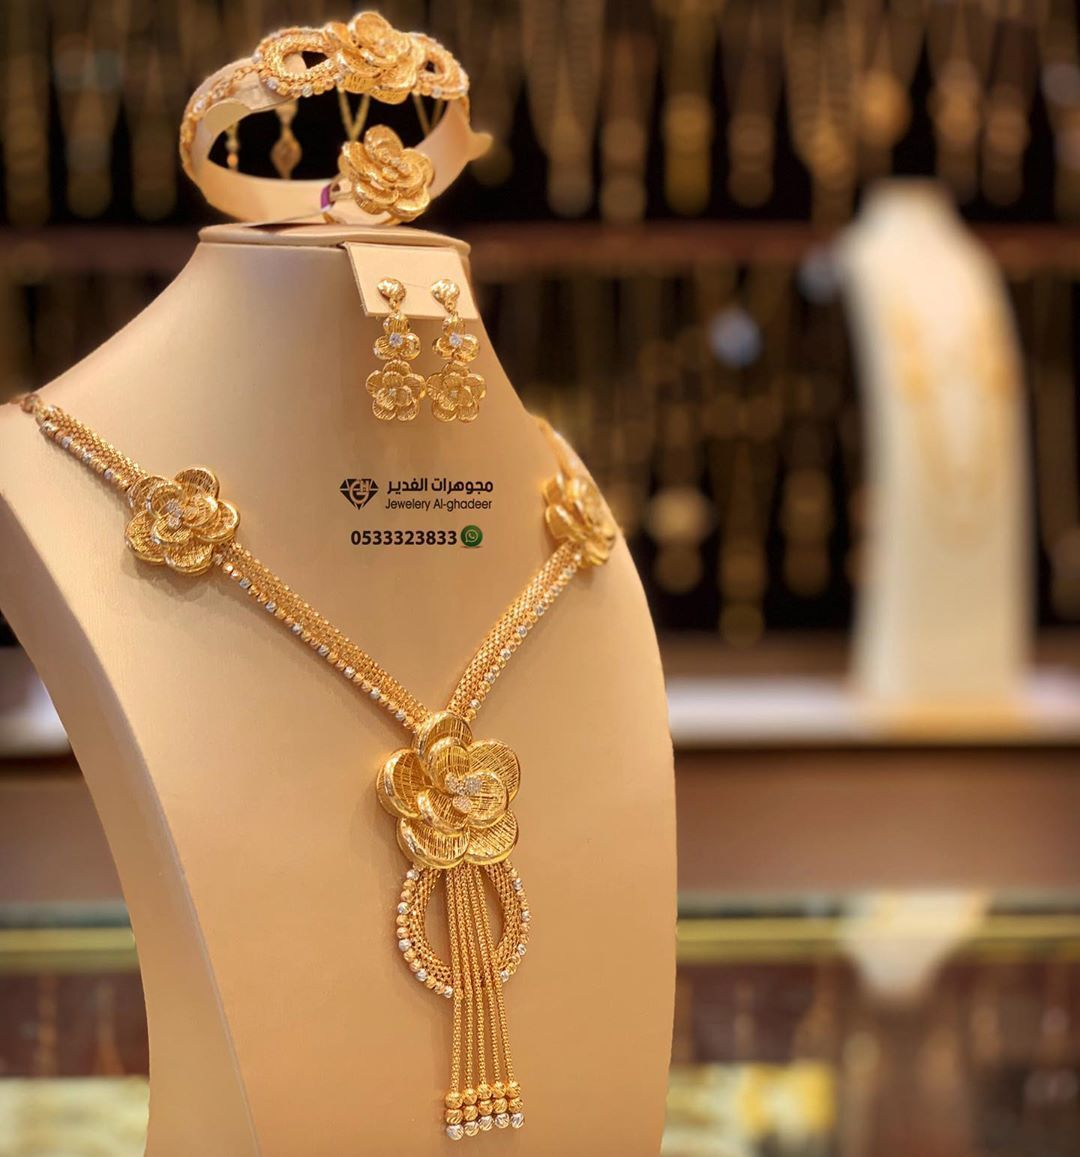 2 150 Likes 57 Comments مجوهرات الغدير وادي الدواسر Gold Alghadeer On Instagram طقم لازوردي ذهب In 2020 Gold Jewelry Fashion Gold Chain Design Gold Jewelry